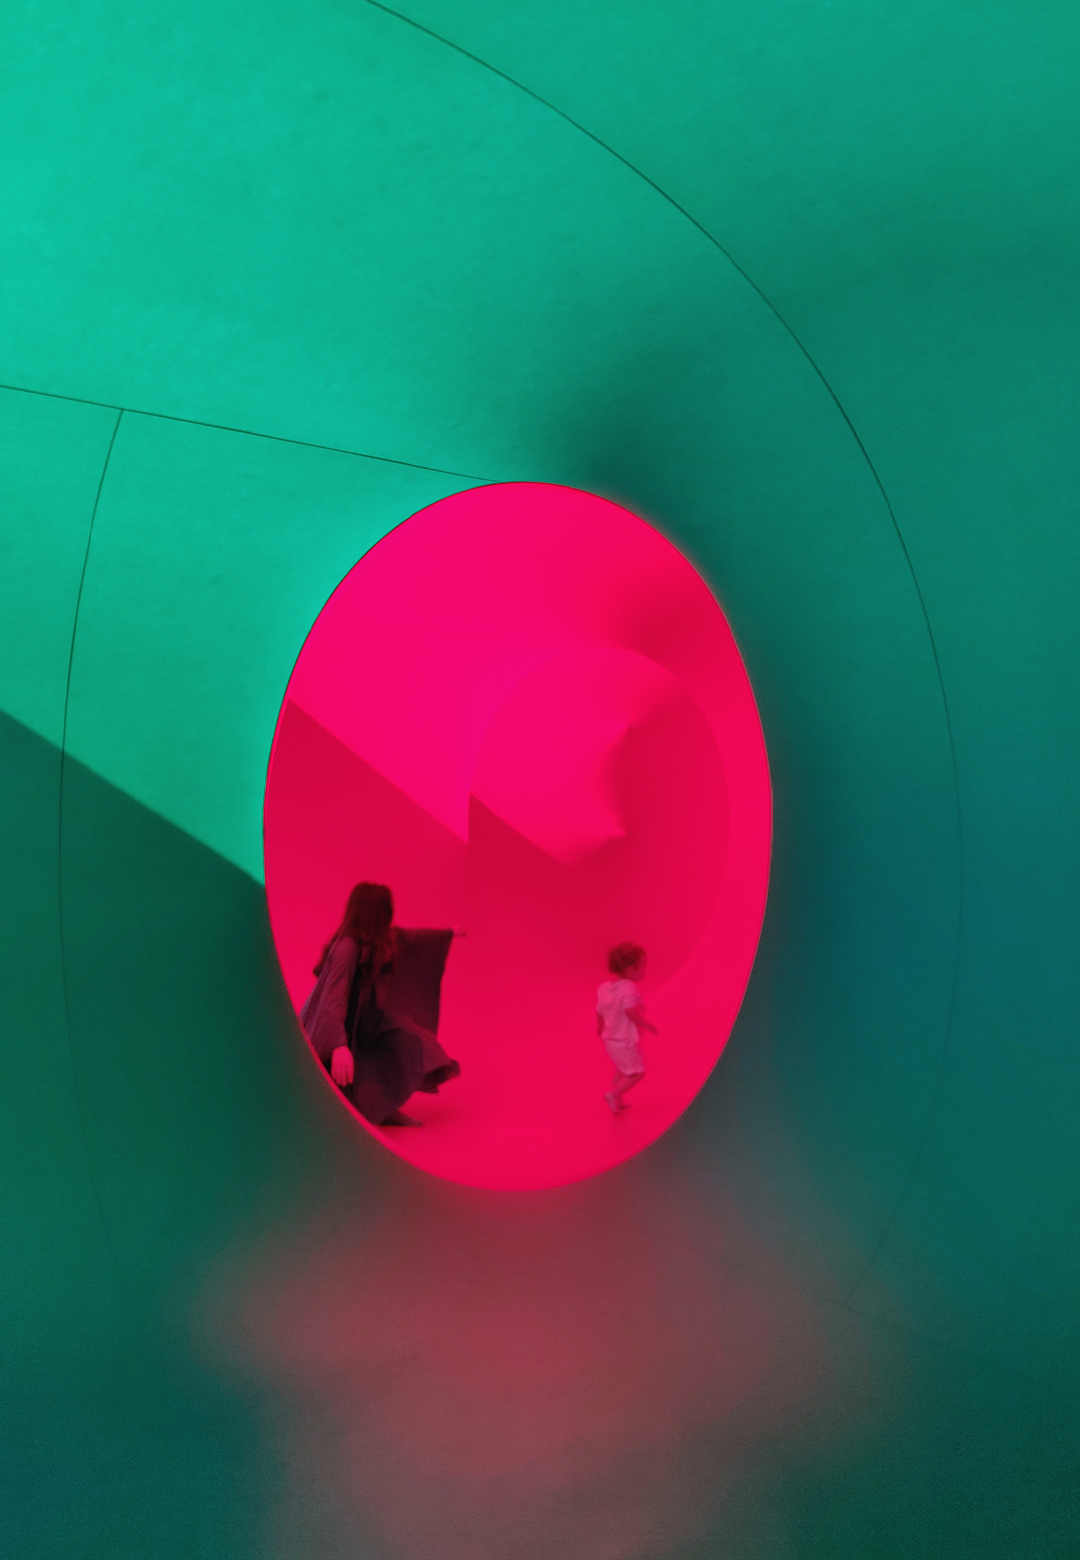 Colourscape Music Festival at Clapham Common, London Design Festival 2019| London Design Festival 2019 | STIR